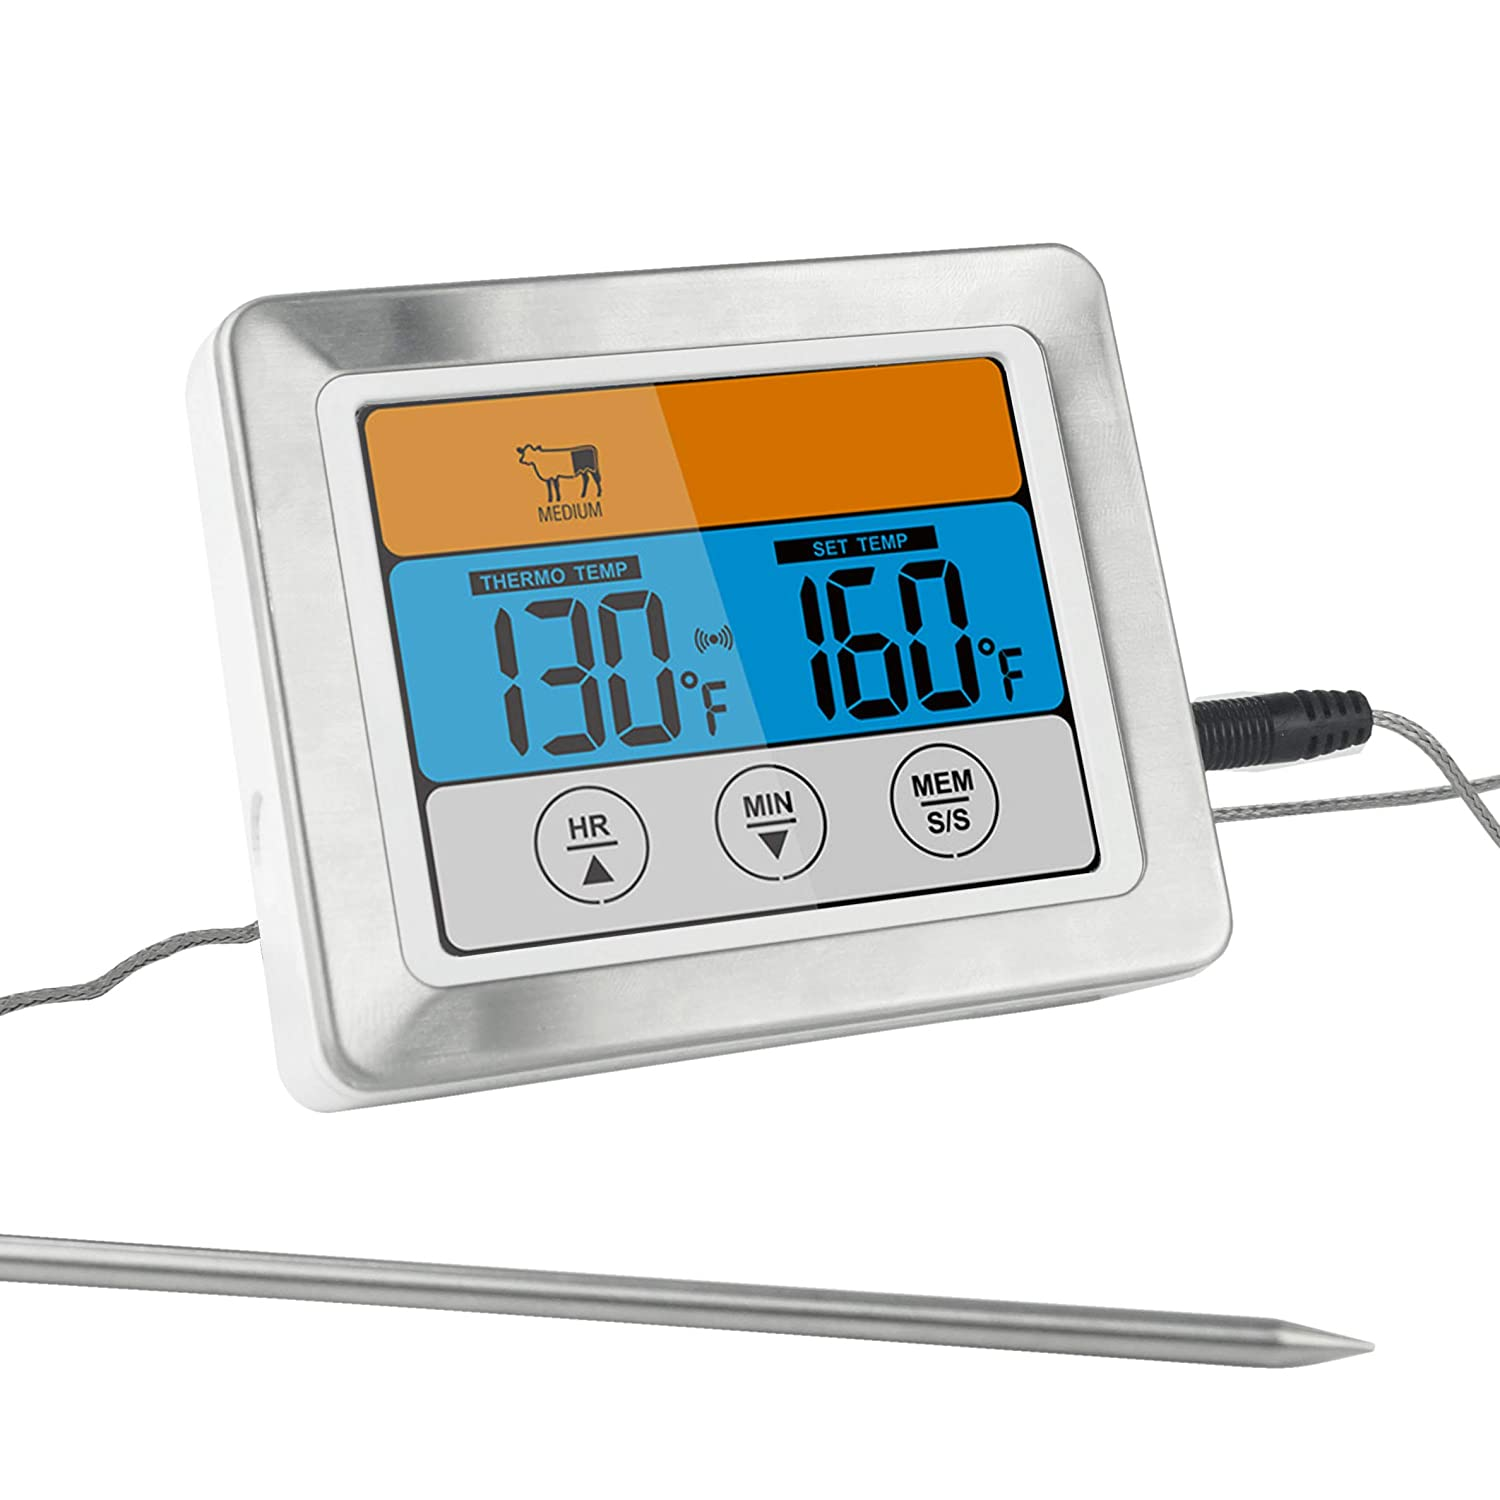 "Kohi Digital Meat Thermometer Food Thermometer Oven Safe Timmer with 3.2"" Large Color Touch Screen for Grilling Roasting Turkeys, BBQ, Oven Cooking"